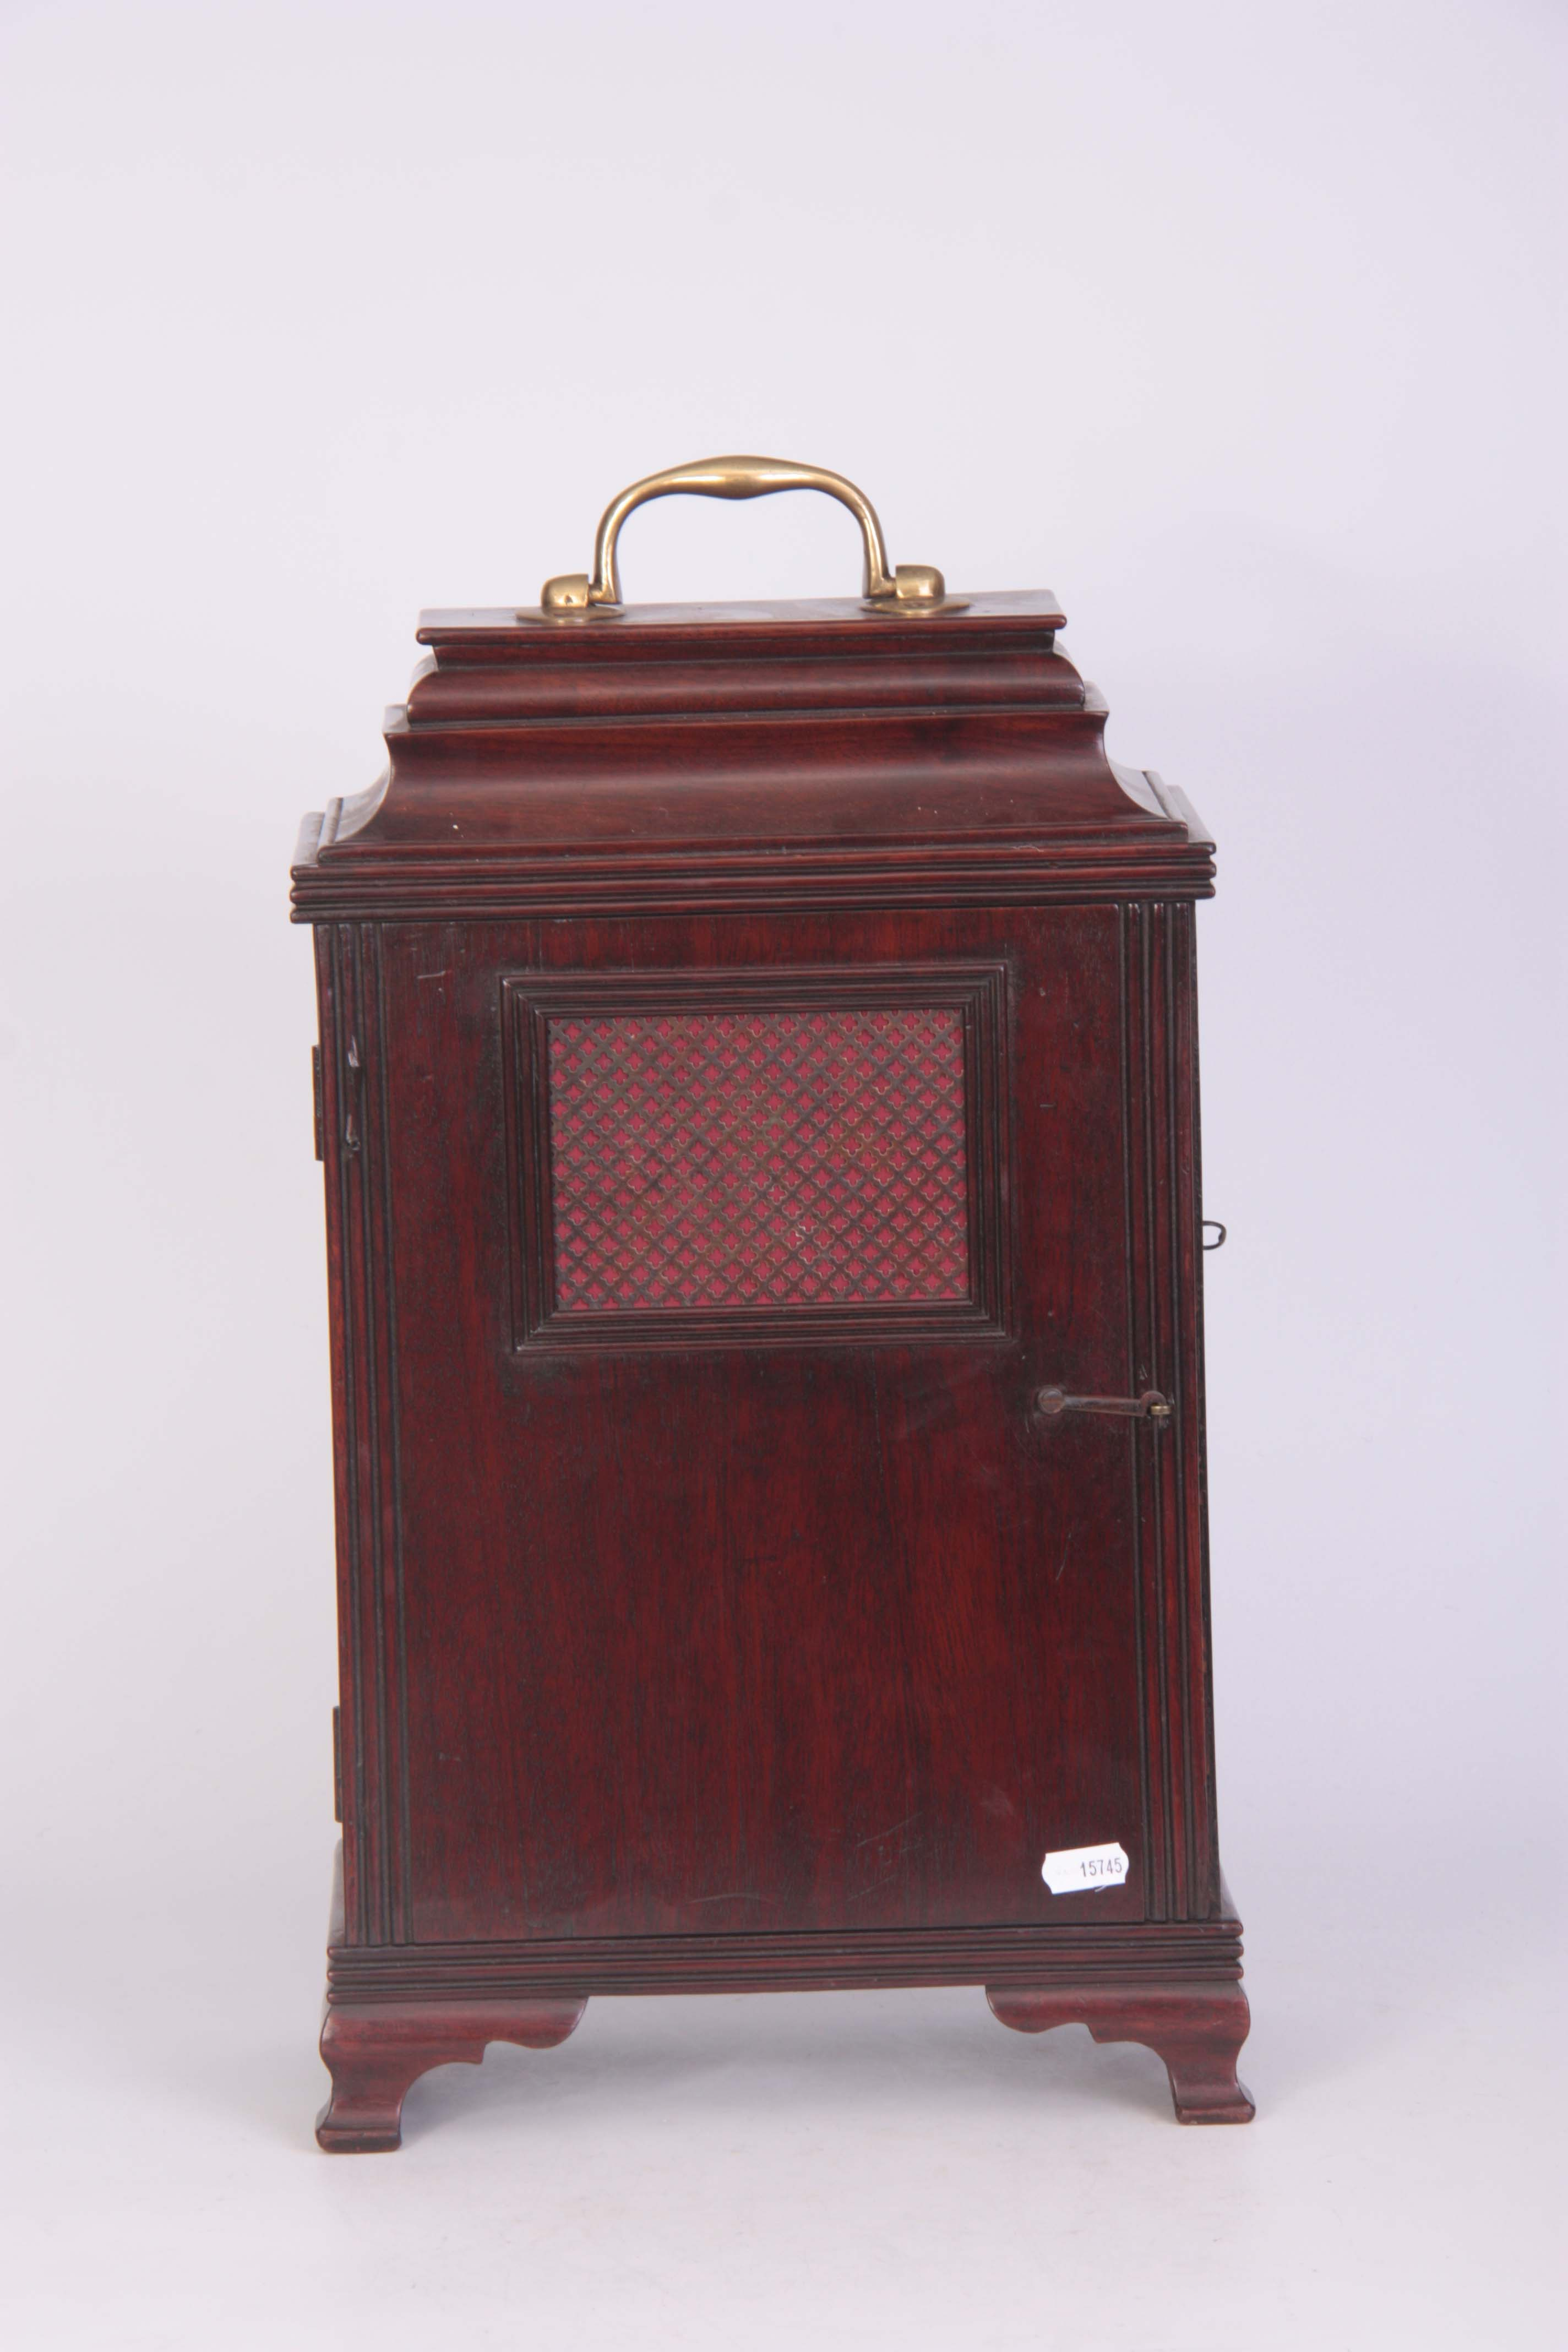 WILLIAM JACKSON, FRODSHAM A GEORGE III PAINTED DIAL MAHOGANY BRACKET CLOCK the case with moulded - Image 4 of 7